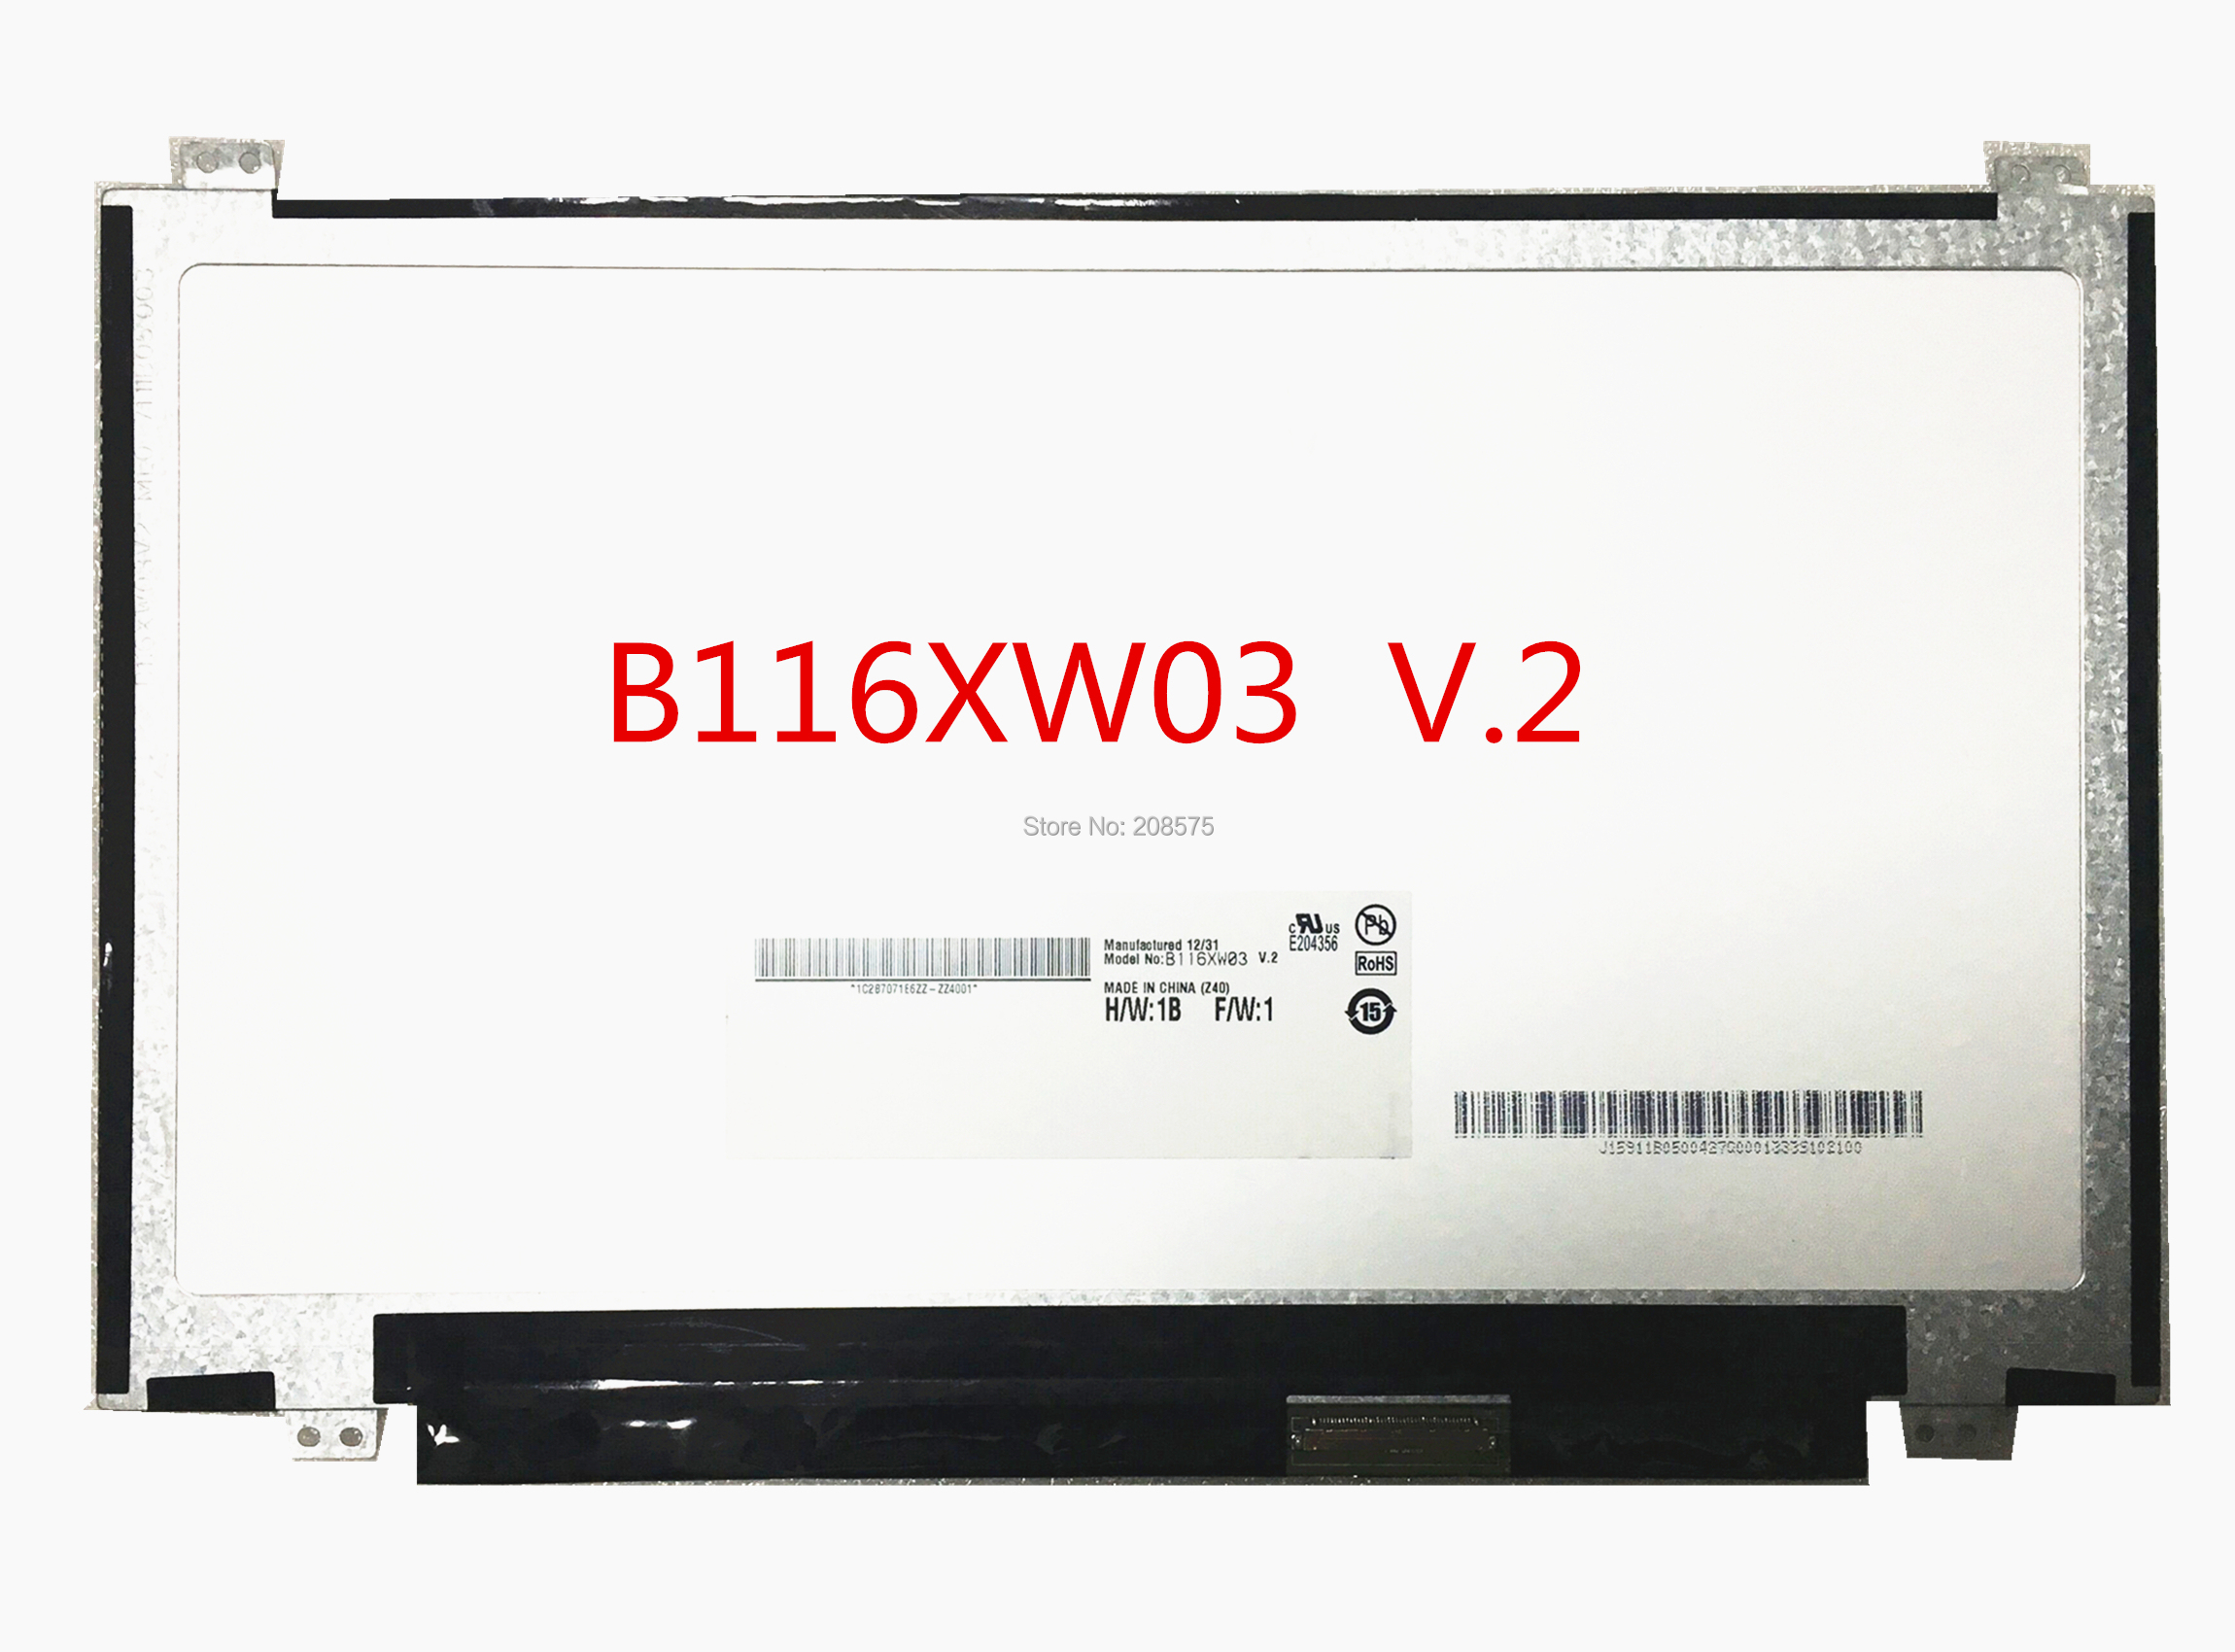 Free shipping B116XW03 V.2 N116BGE-L41 L42 B116XTN04.0 for Acer V5-131 V5-171 722 725 Laptop Lcd Screen 1366*768 LVDS 40 Pins quying laptop lcd screen compatible model nt116whm n10 n116bge l41 n116bge l42 n116bge lb1 b116xw01 v 0 11 6 inch slim 40 pin